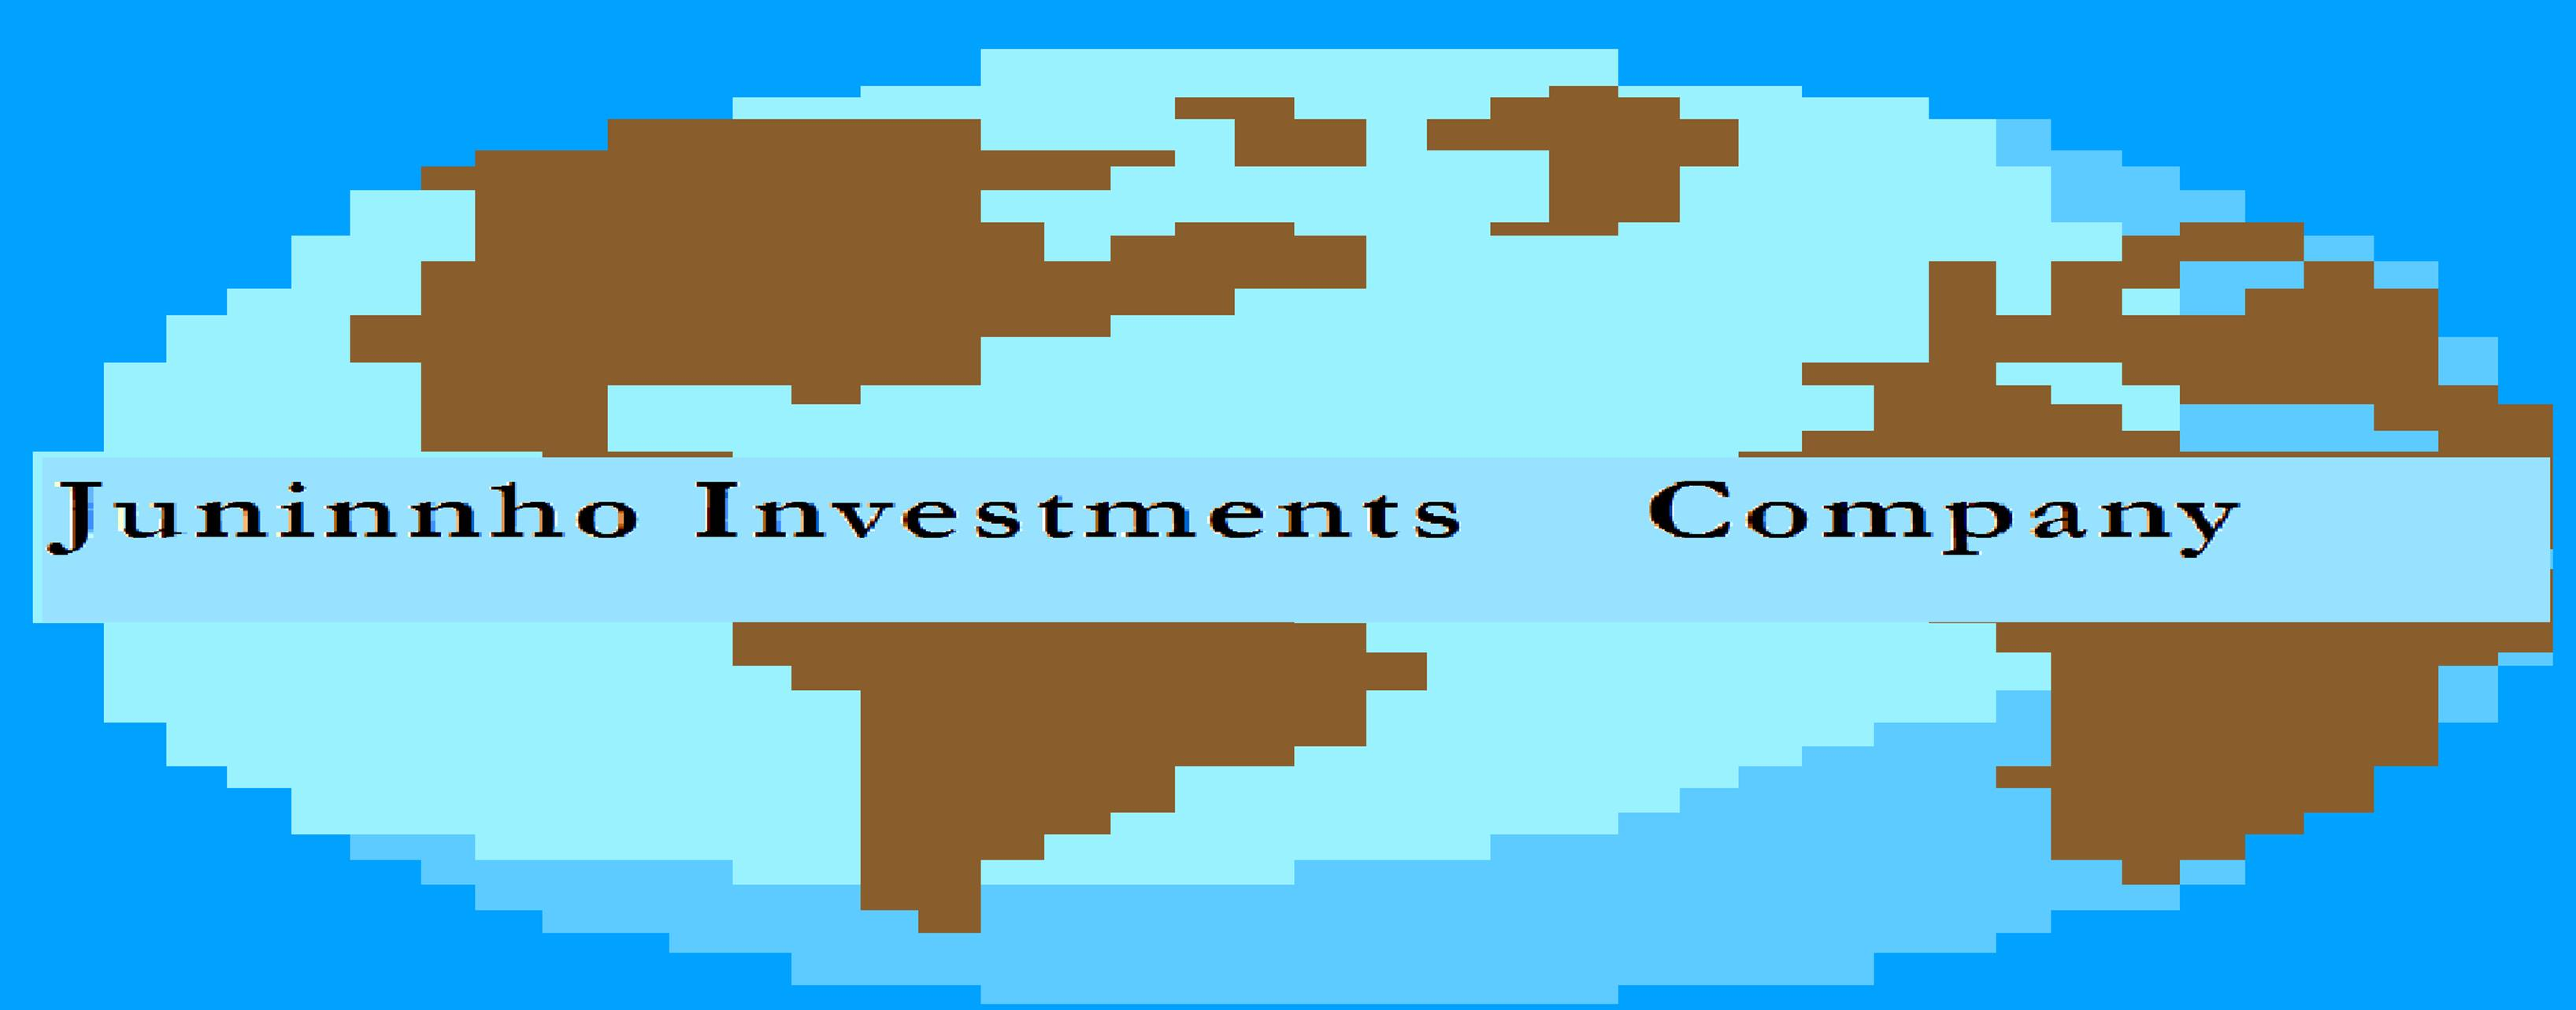 Juninnho Investments Company, Freetown, Sierra Leone